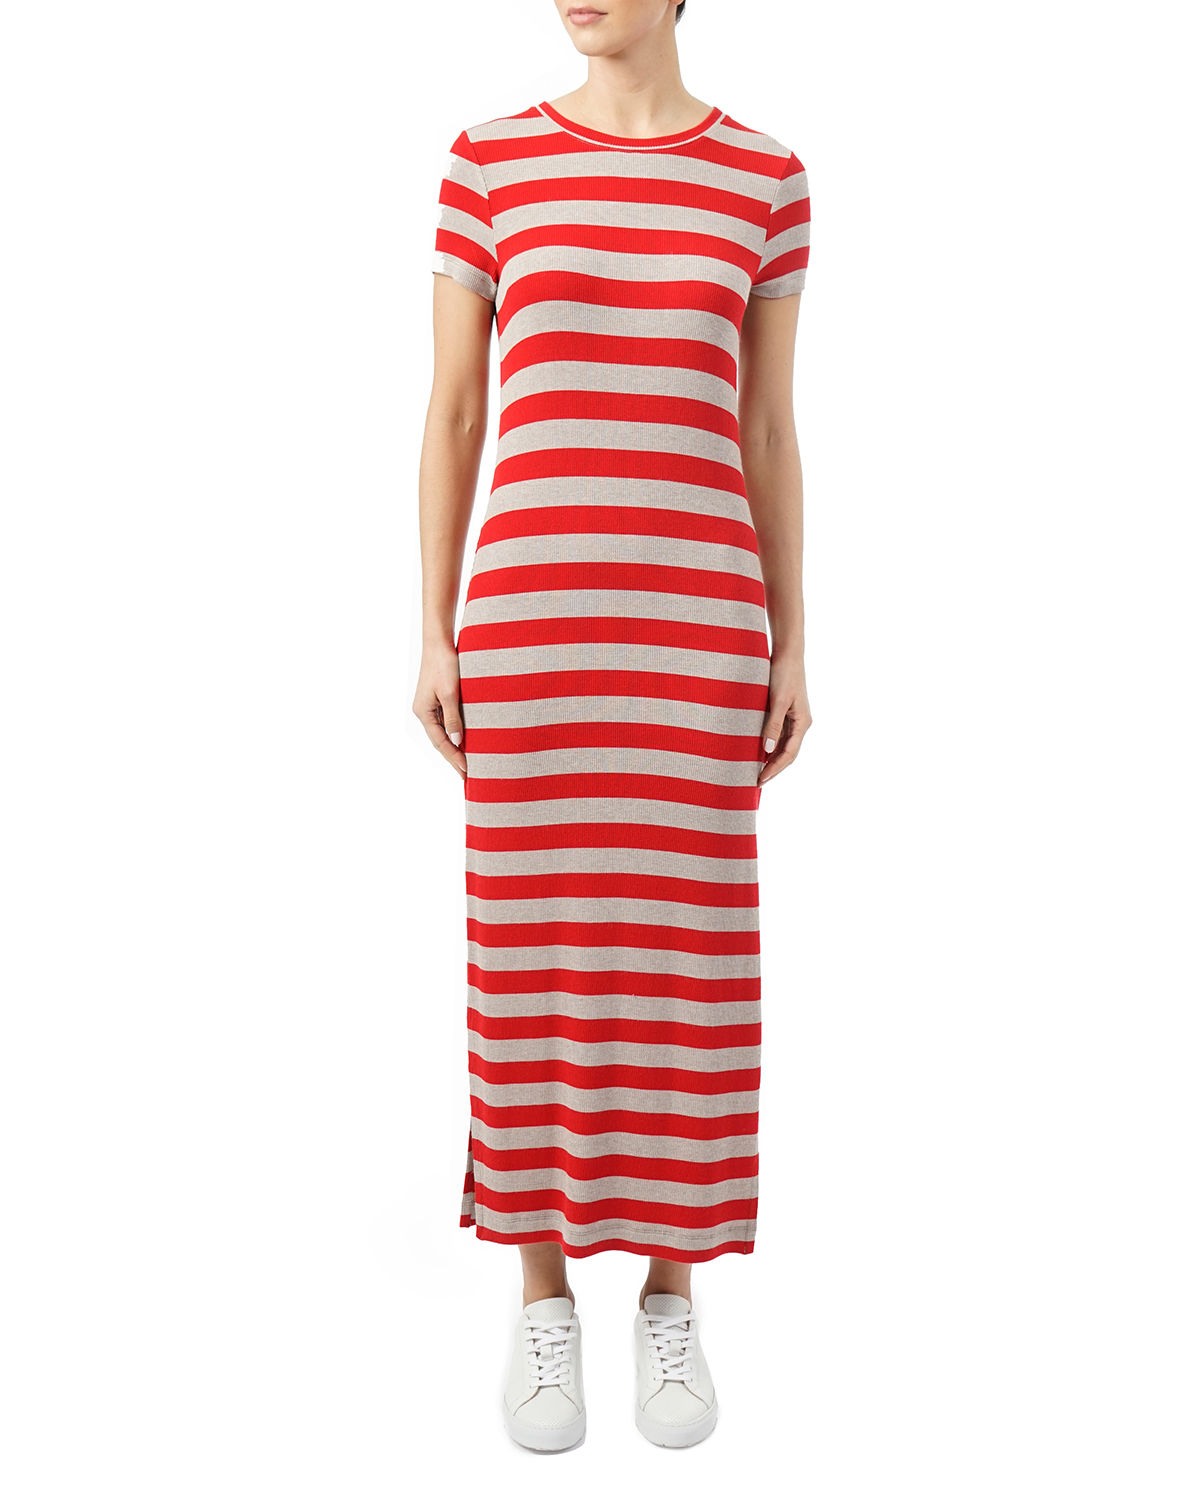 Three Dots Dresses STRIPED CREWNECK SHORT-SLEEVE DRESS WITH SLITS